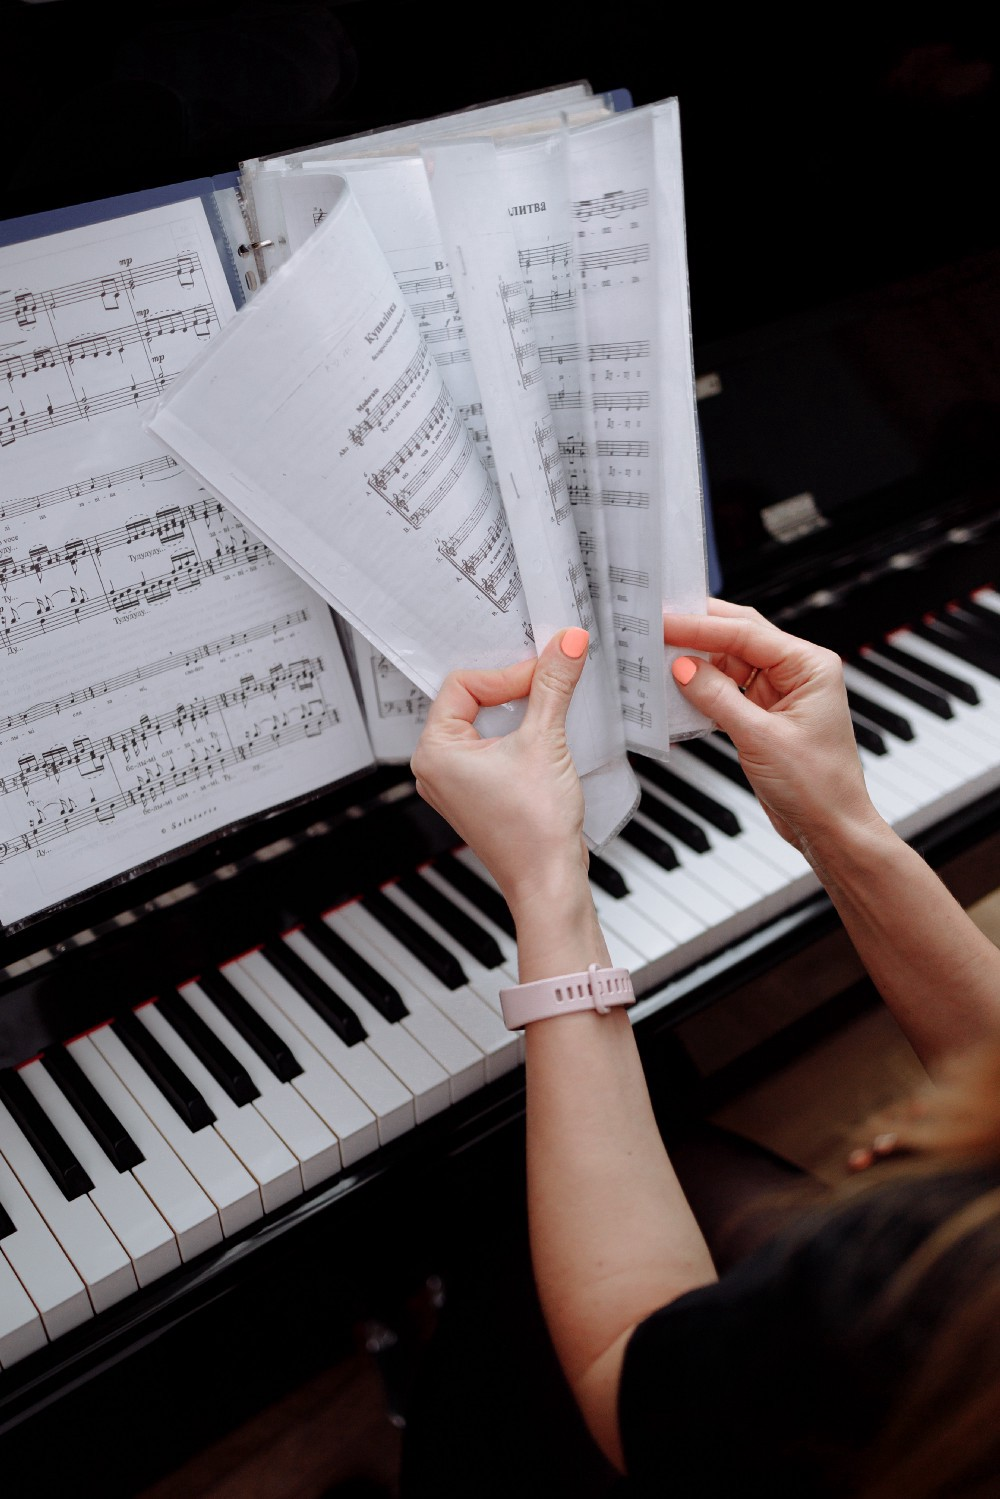 Woman's hands turn pages of sheet music over piano. Her hands appear to be of a person of color, and her fingers are topped with orange nail polish.